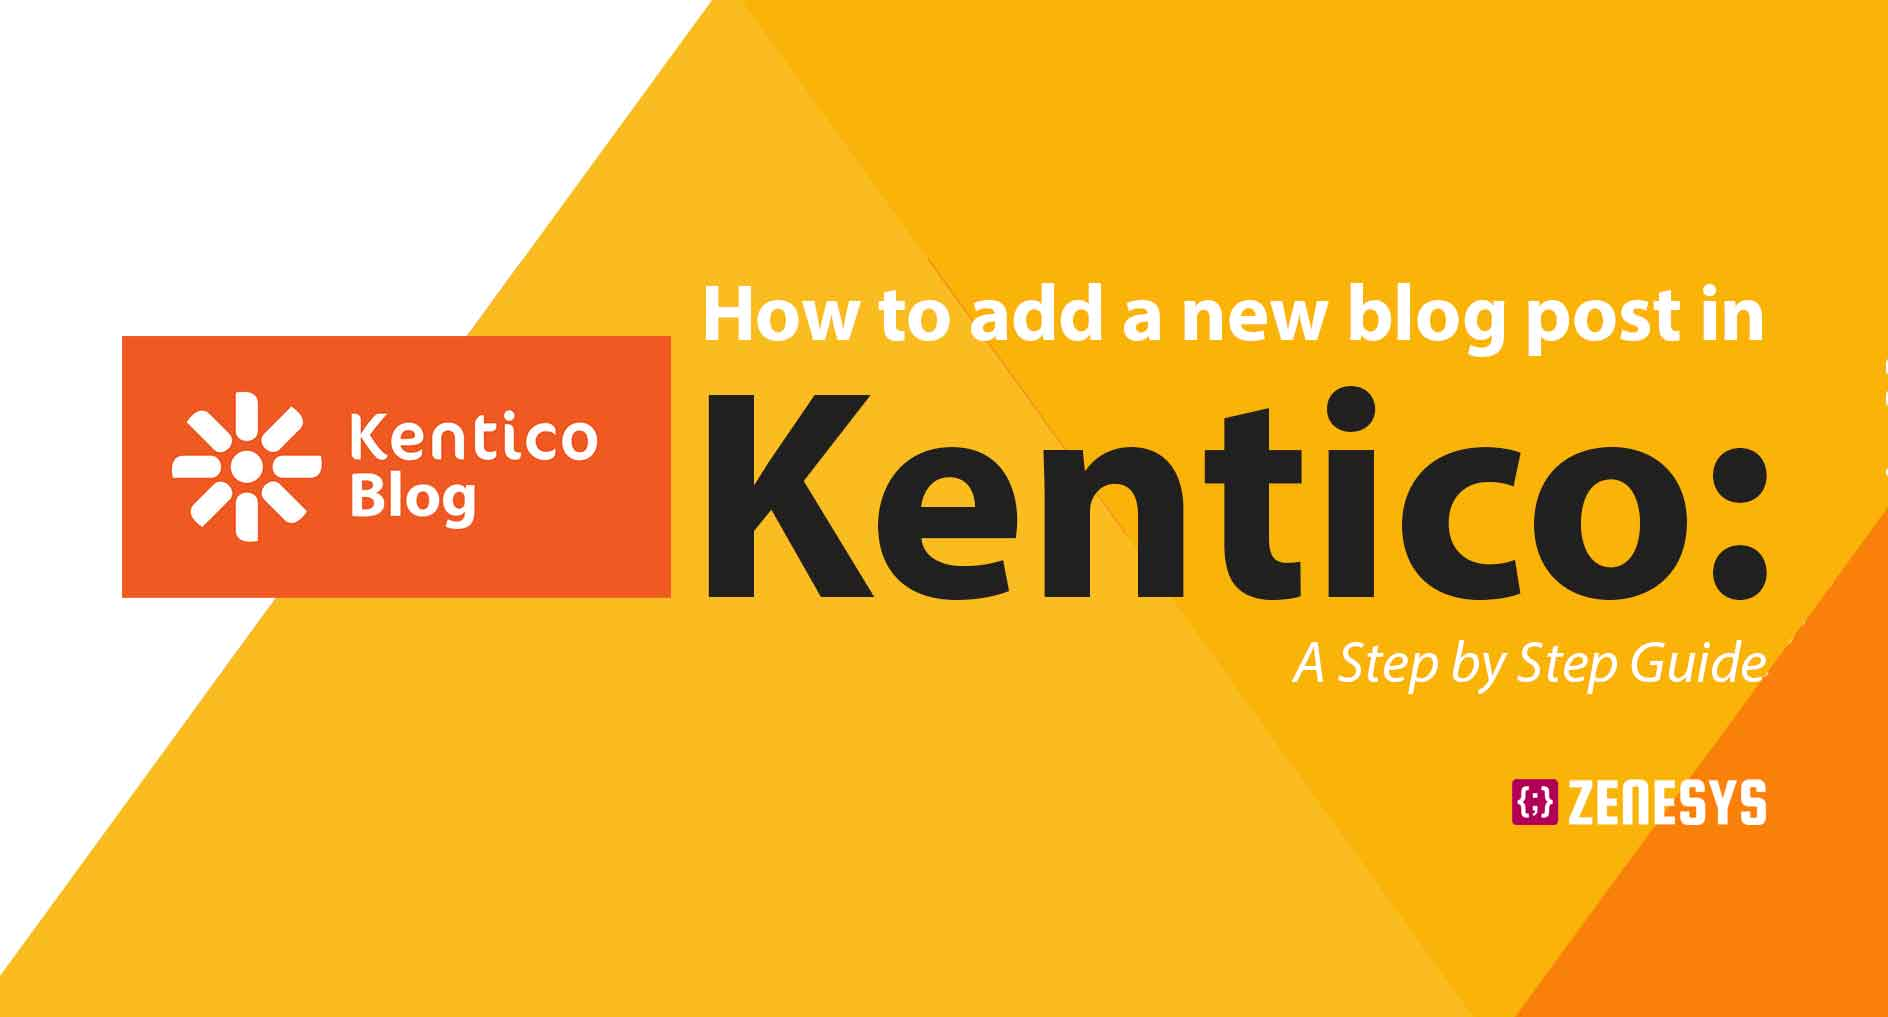 How to add a new blog post in Kentico: A Step by Step Guide